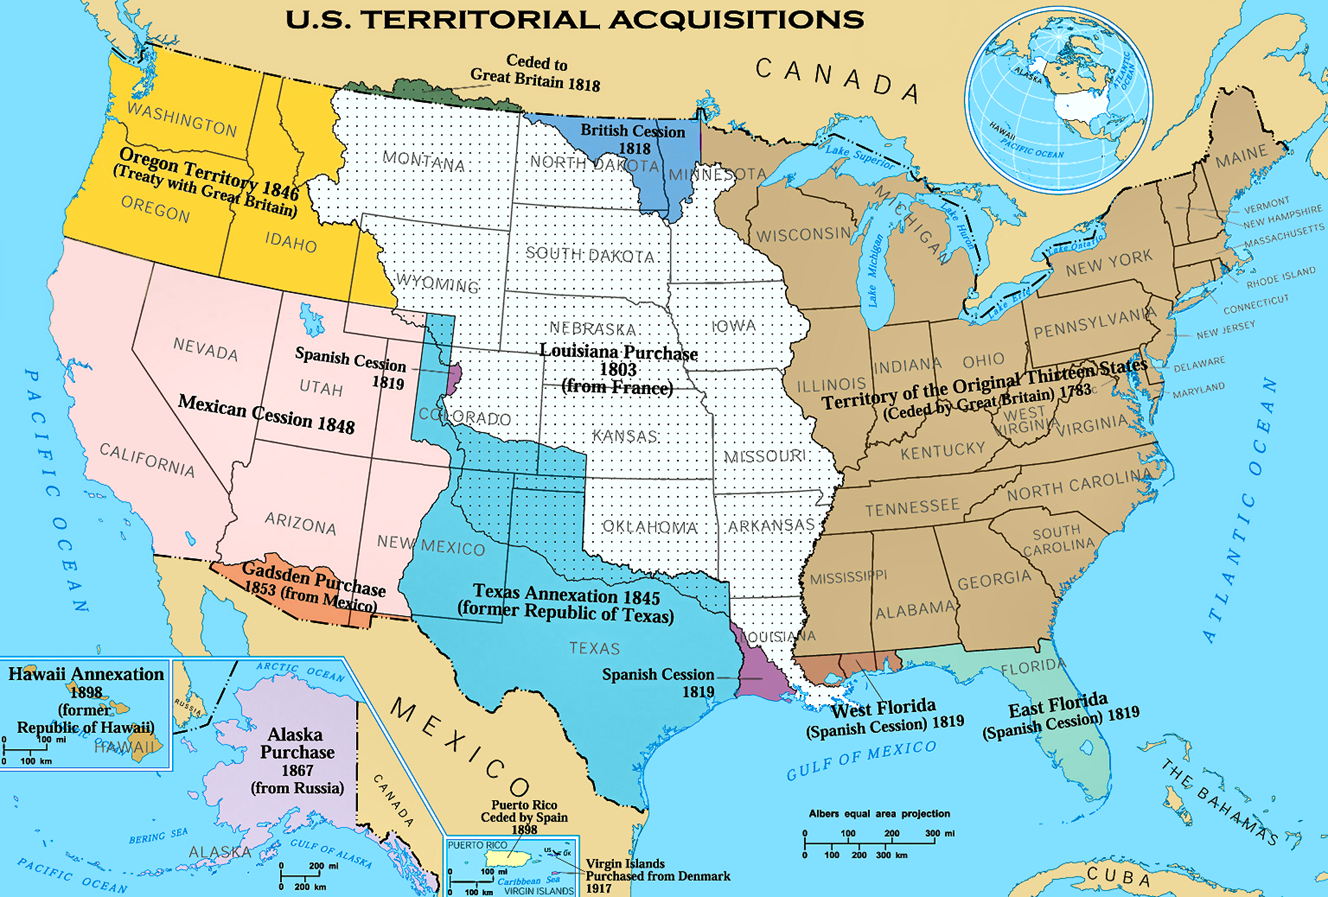 the united states had added about 2 425 000 square miles to its territory and owned nearly all of it thus by the time of the first railroad land grant in